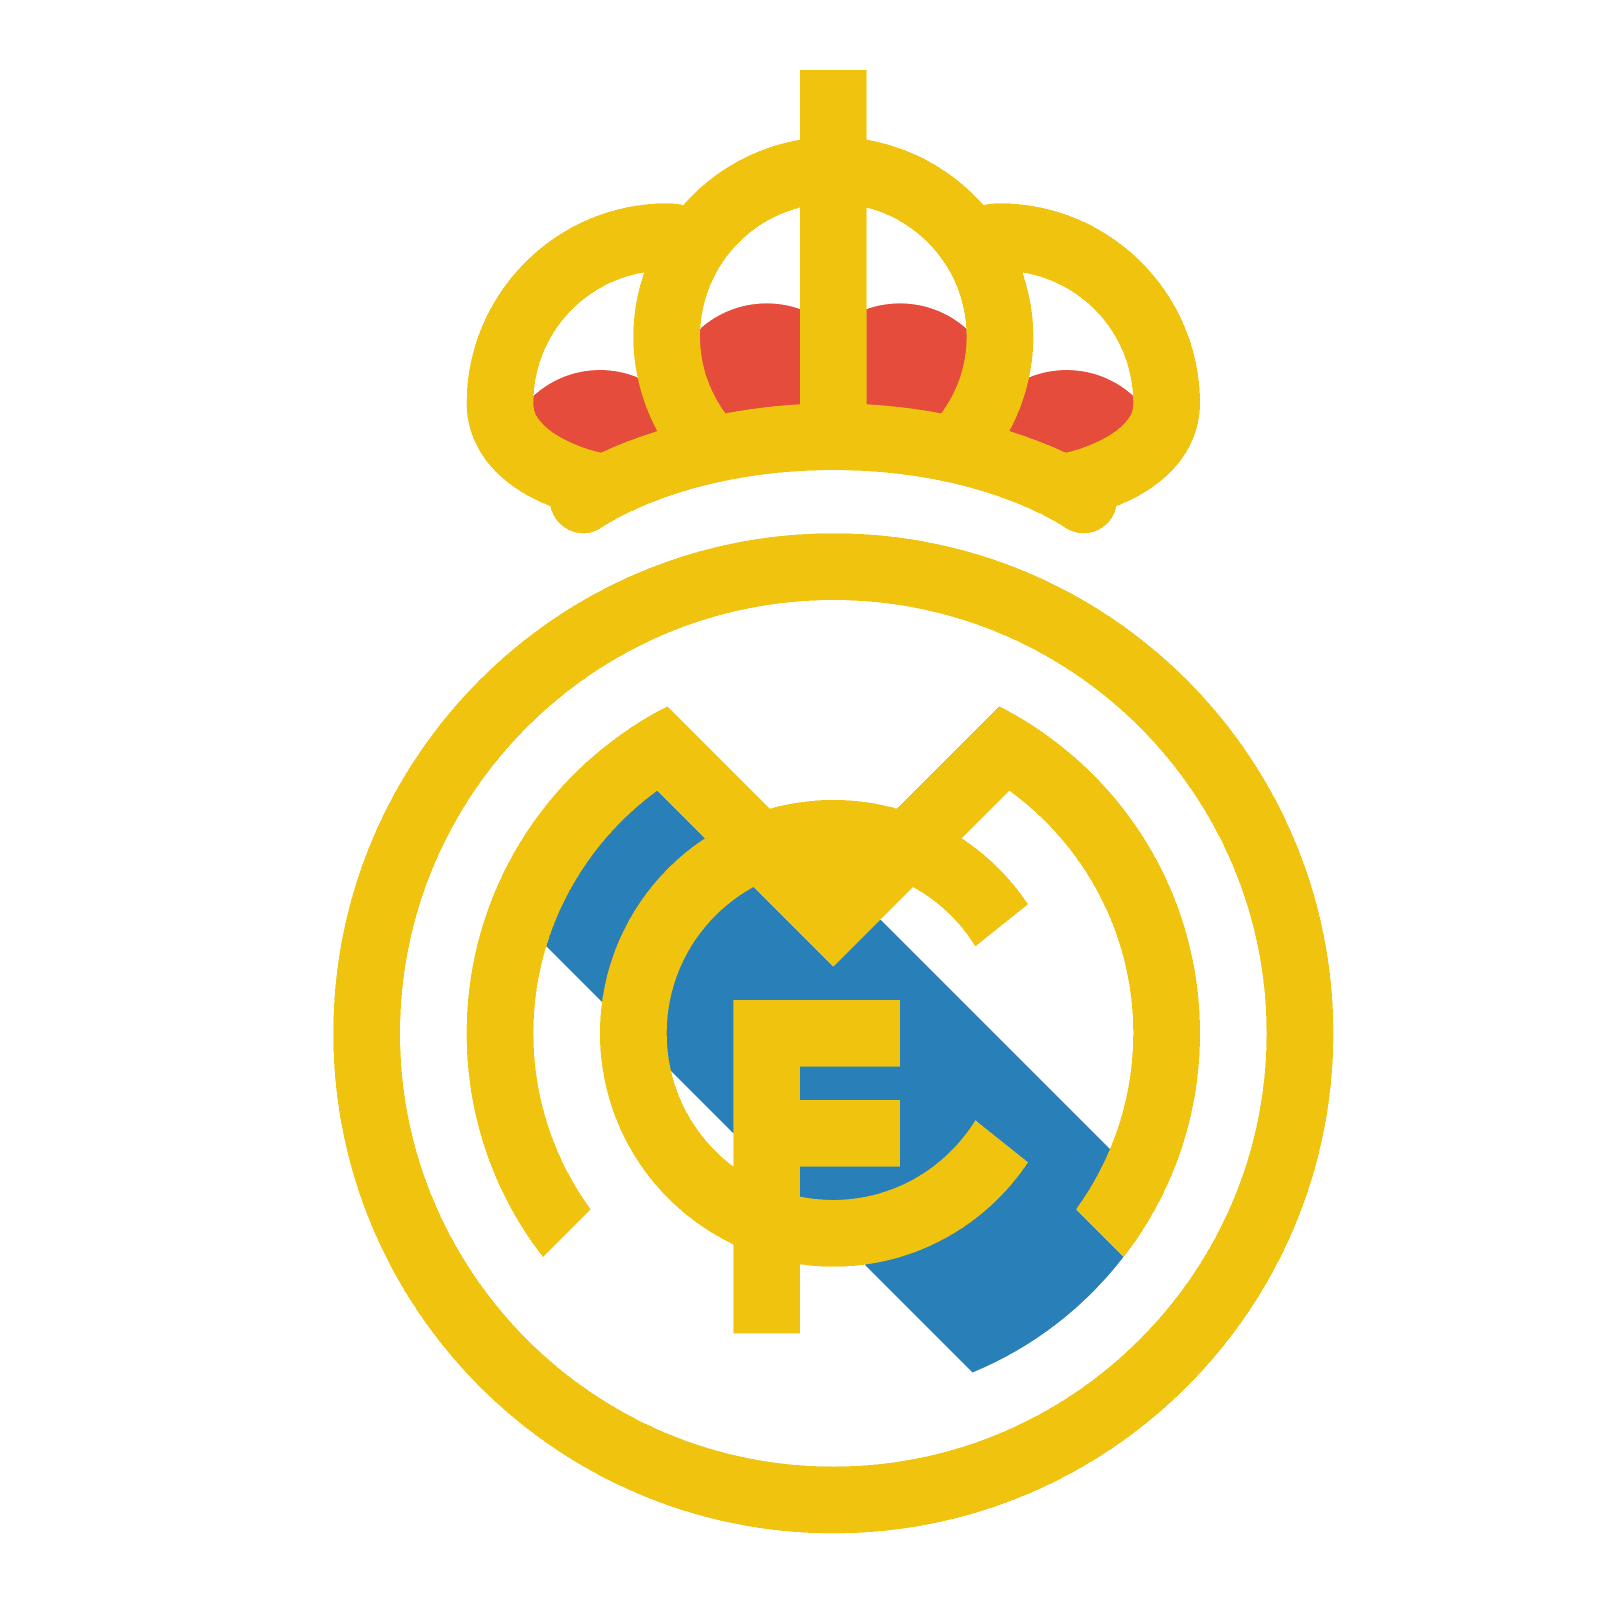 Club vector colorful. Real madrid icon free